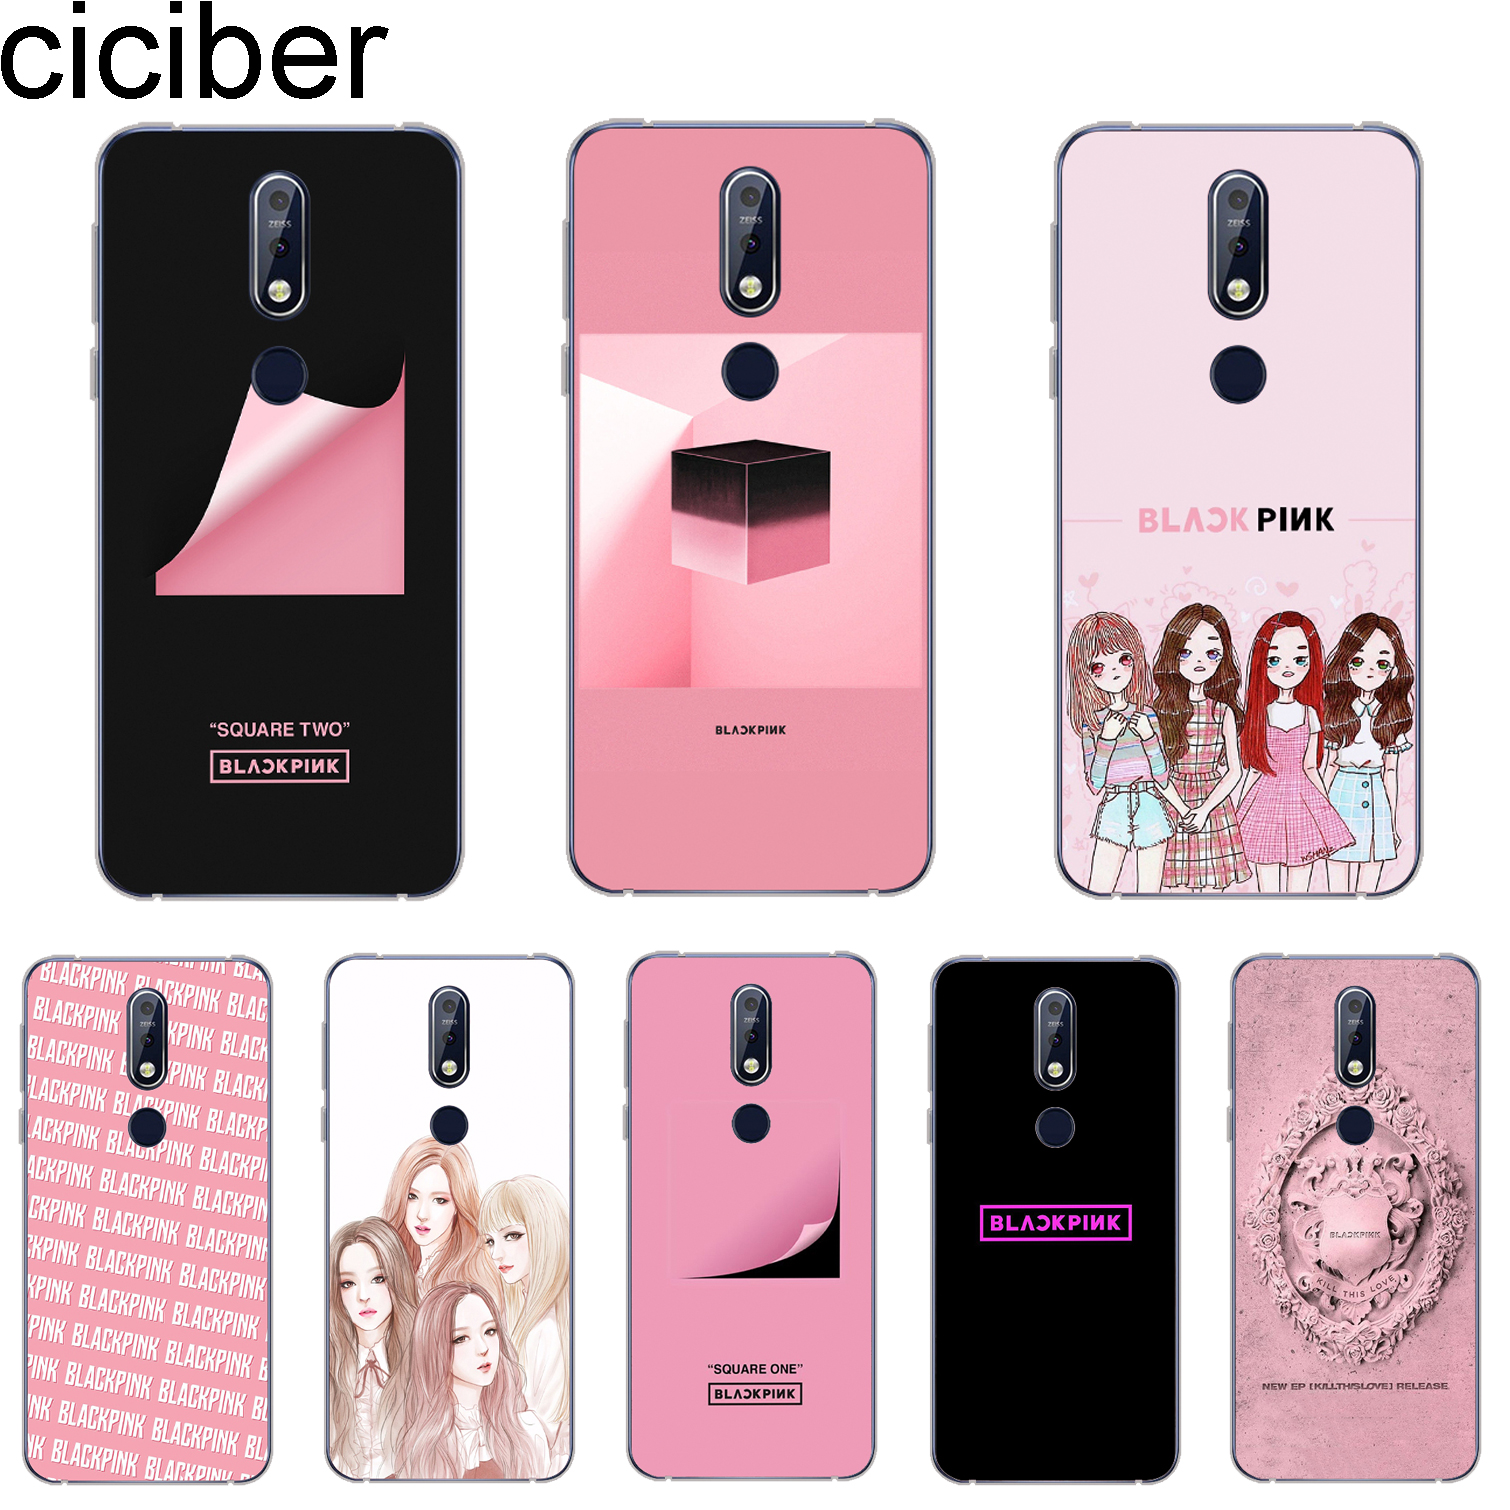 Cellphones & Telecommunications Ciciber Cover For Nokia 8 8.1 7 7.1 6 6.1 5 5.1 3 3.1 2 2.1 Plus 9 Pureview Phone Cases For Nokia X7 X6 X5 X3 Soft Tpu Blackpink Regular Tea Drinking Improves Your Health